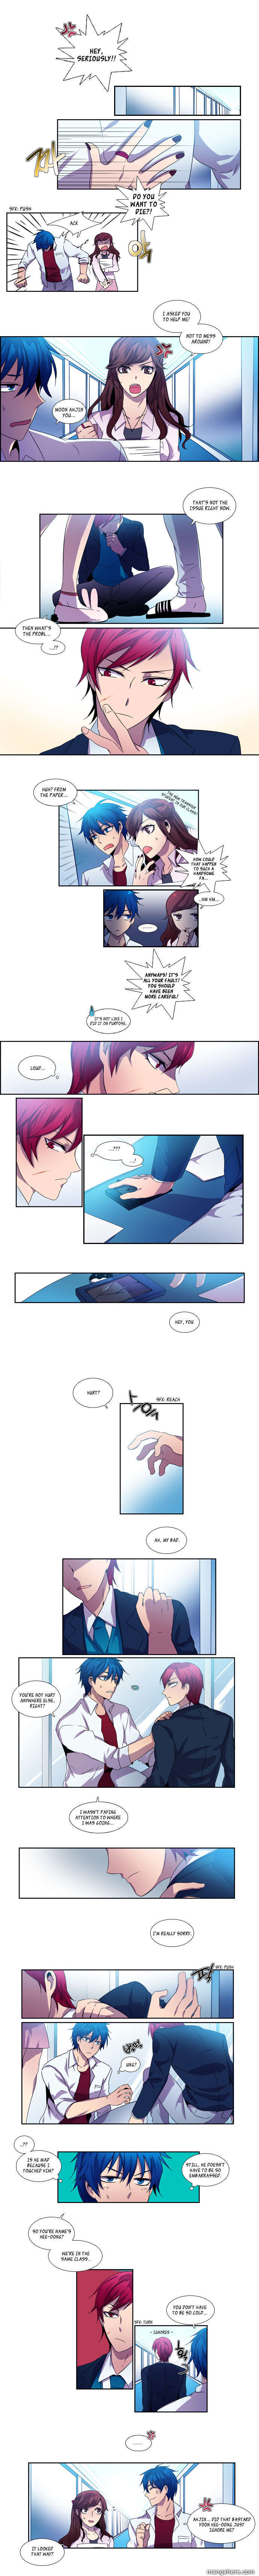 Wonted 2 Page 3